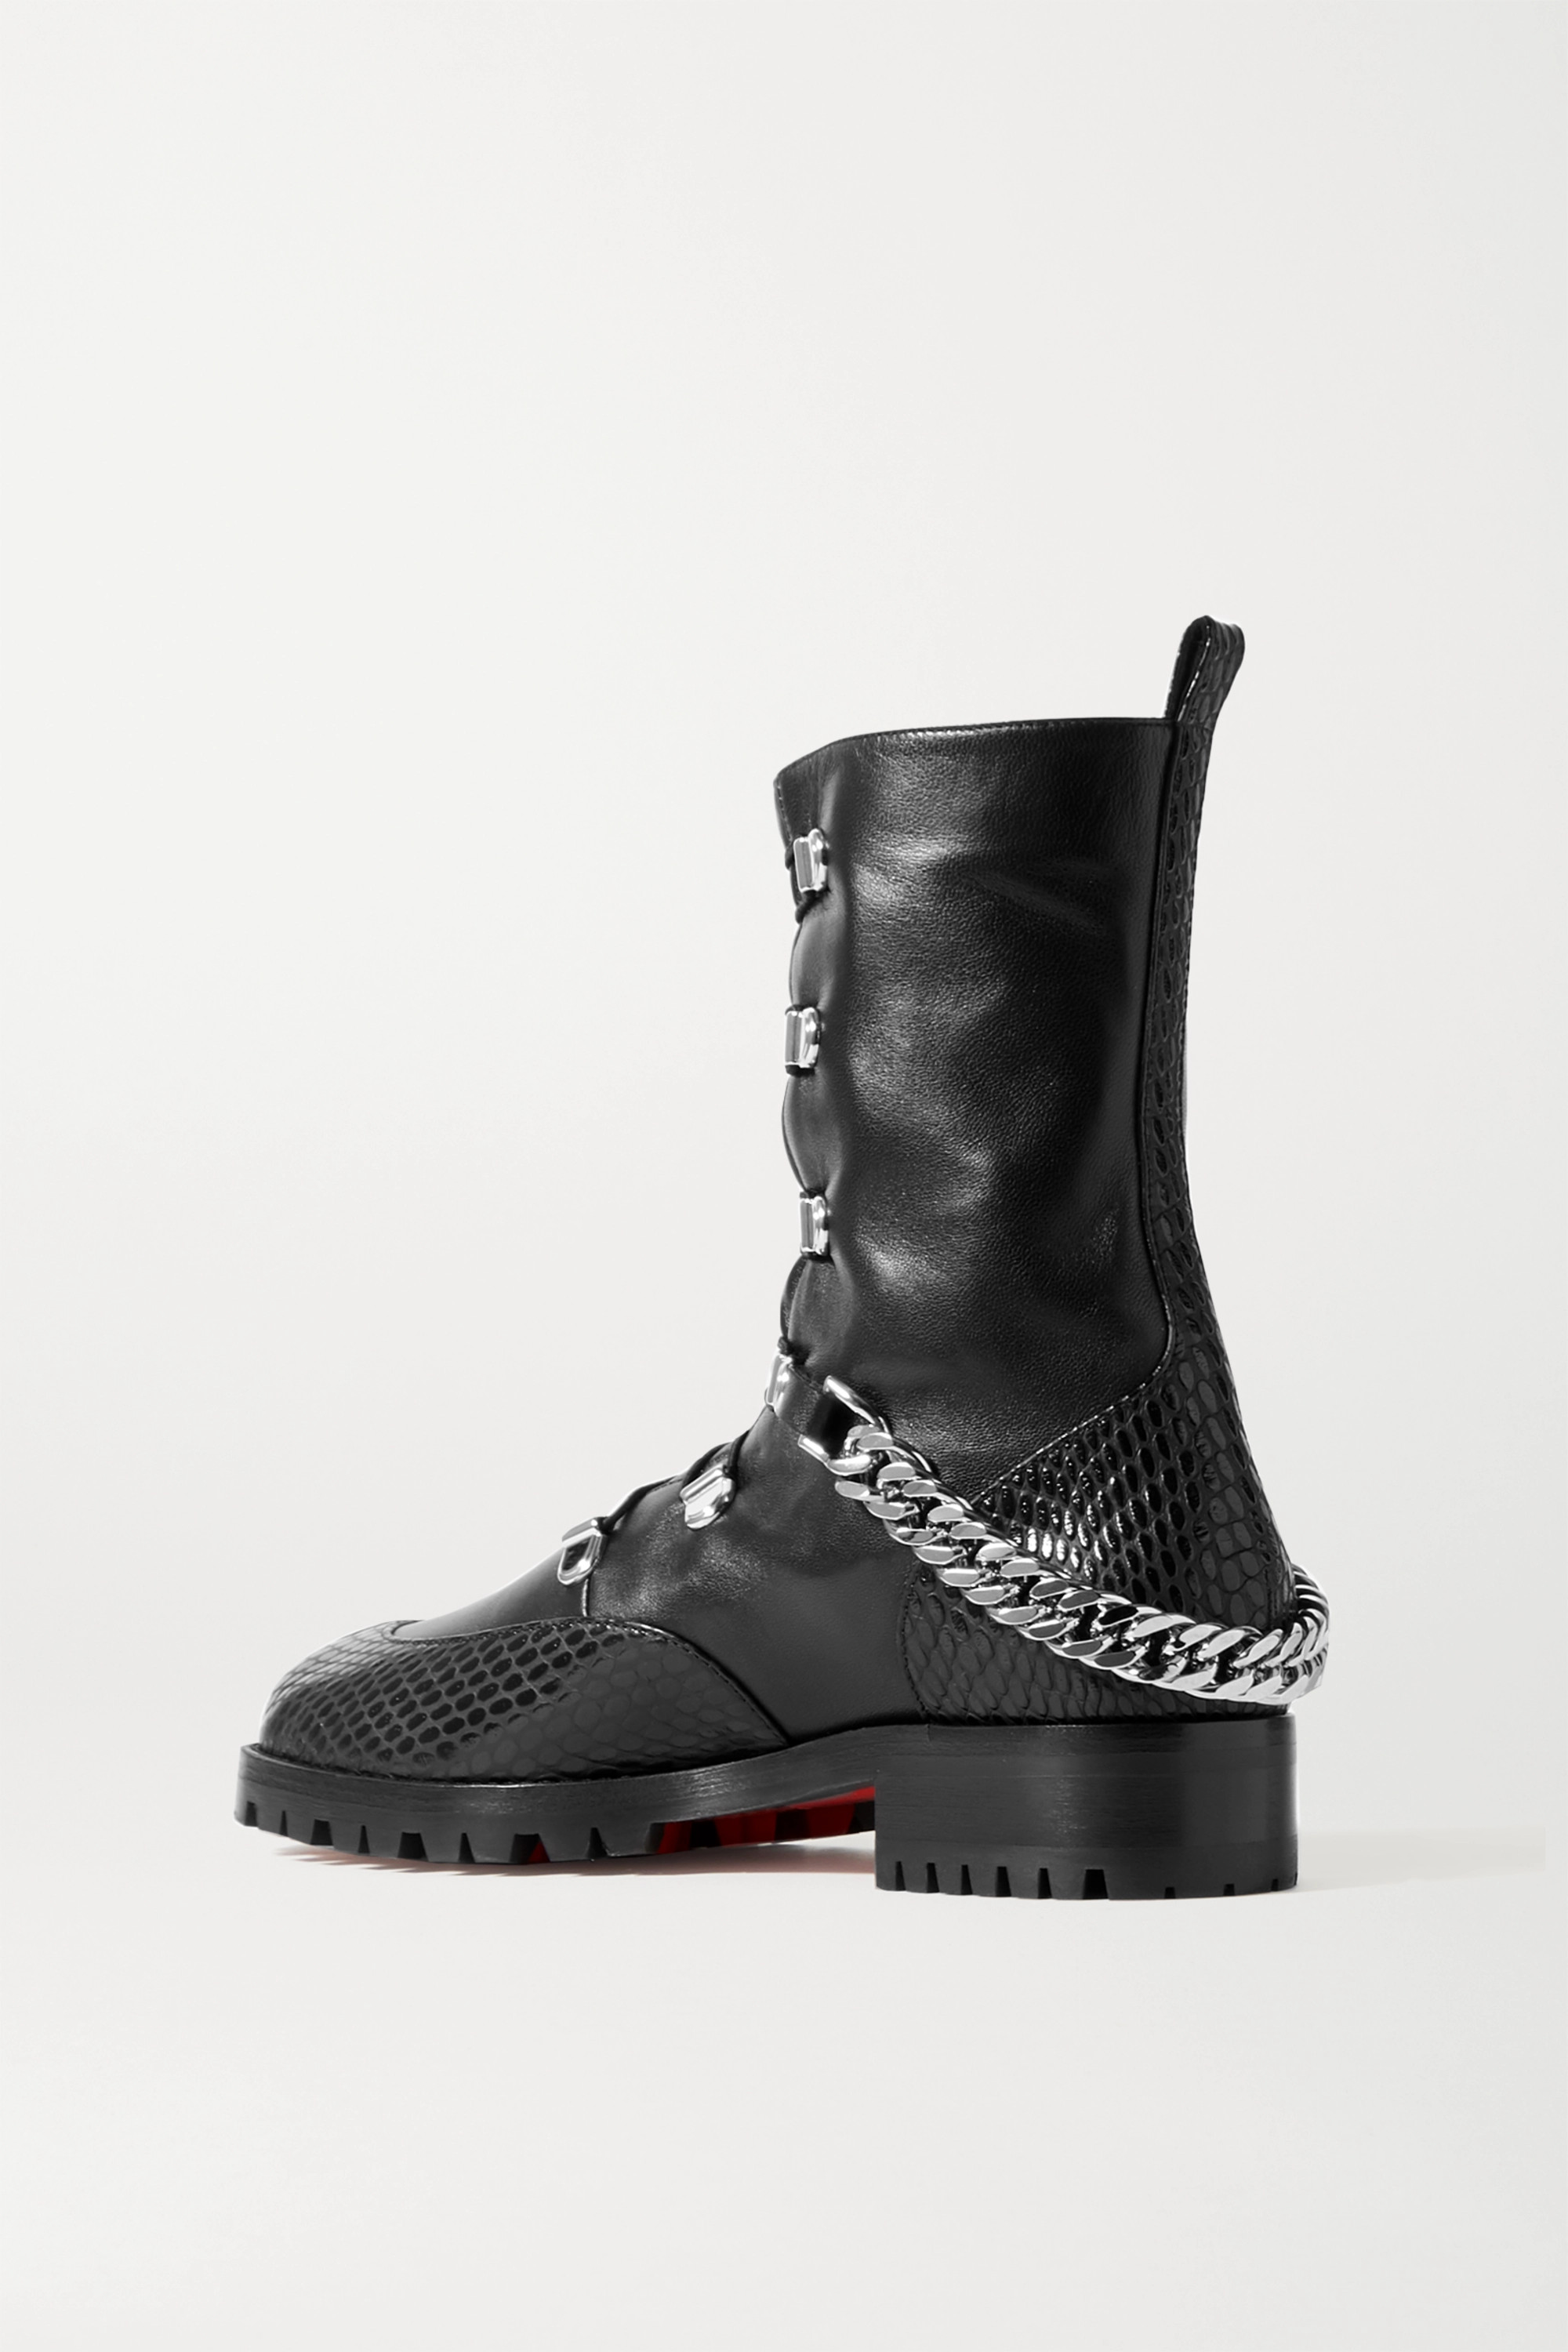 CHRISTIAN LOUBOUTIN 20 chain-embellished smooth and lizard-effect leather ankle boots